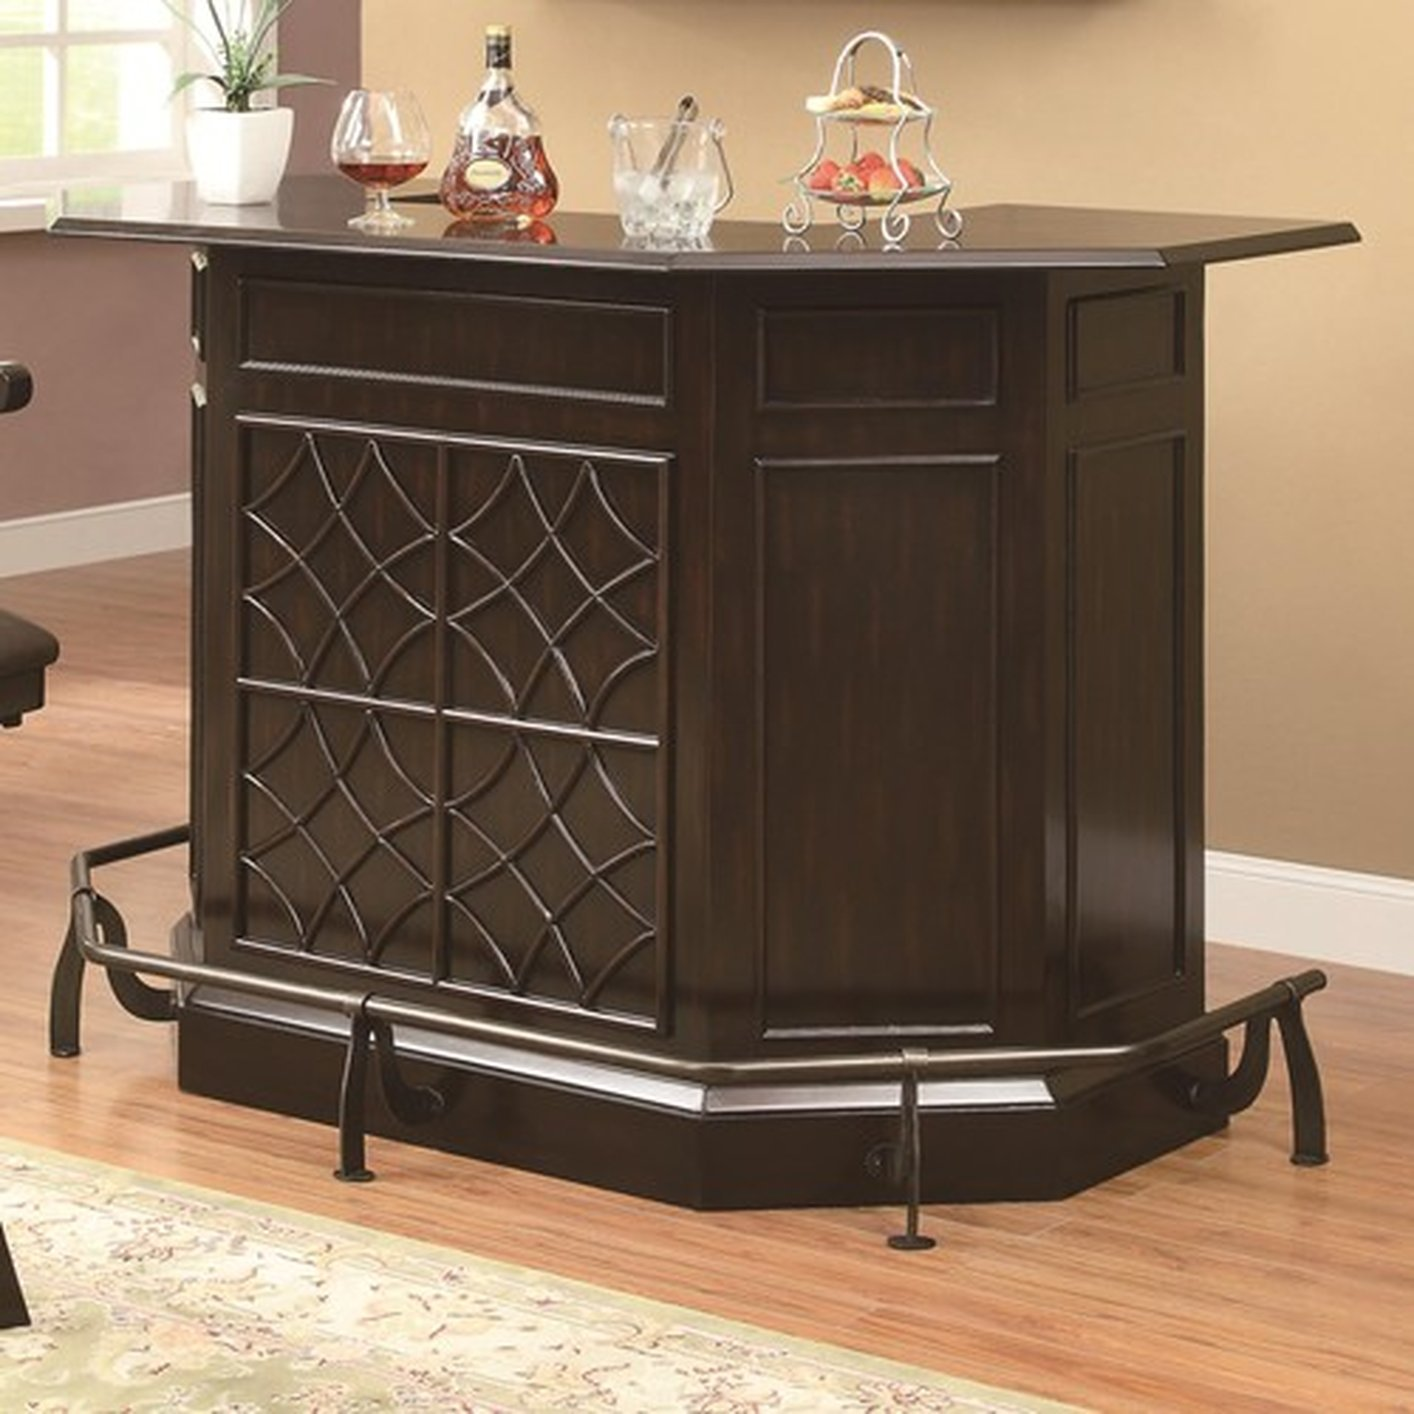 Brown glass bar unit steal a sofa furniture outlet los